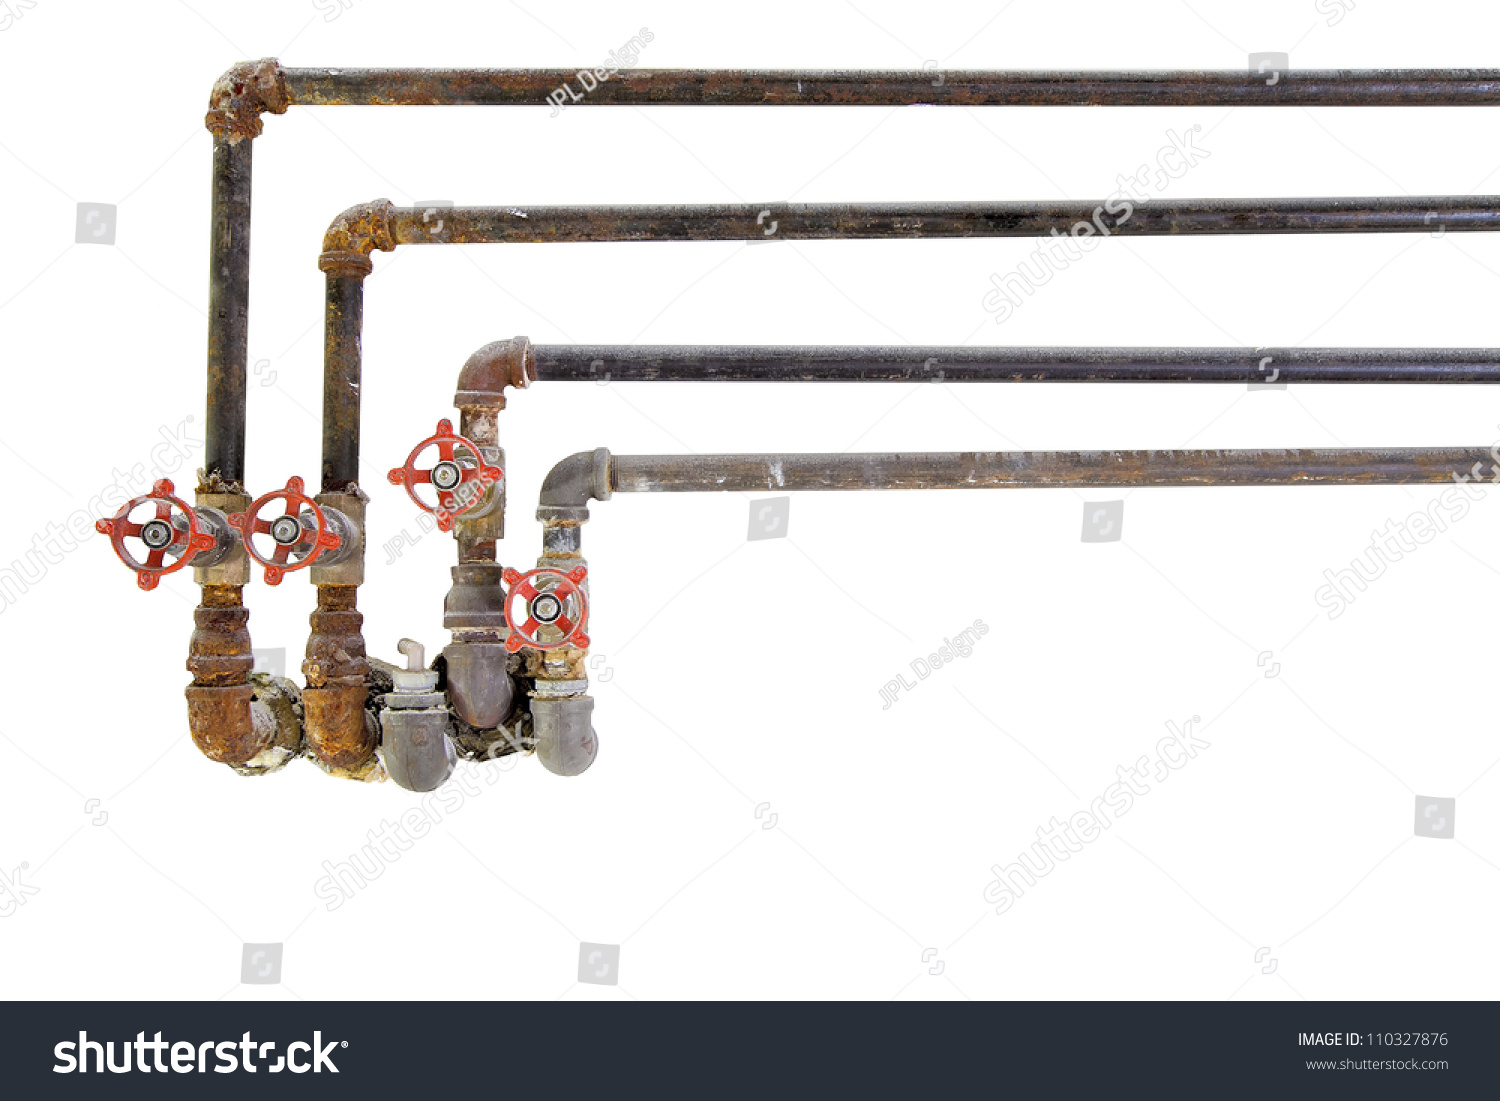 Old Heating Cooling Water Plumbing Pipes Stock Photo ...  Old Heating Coo...